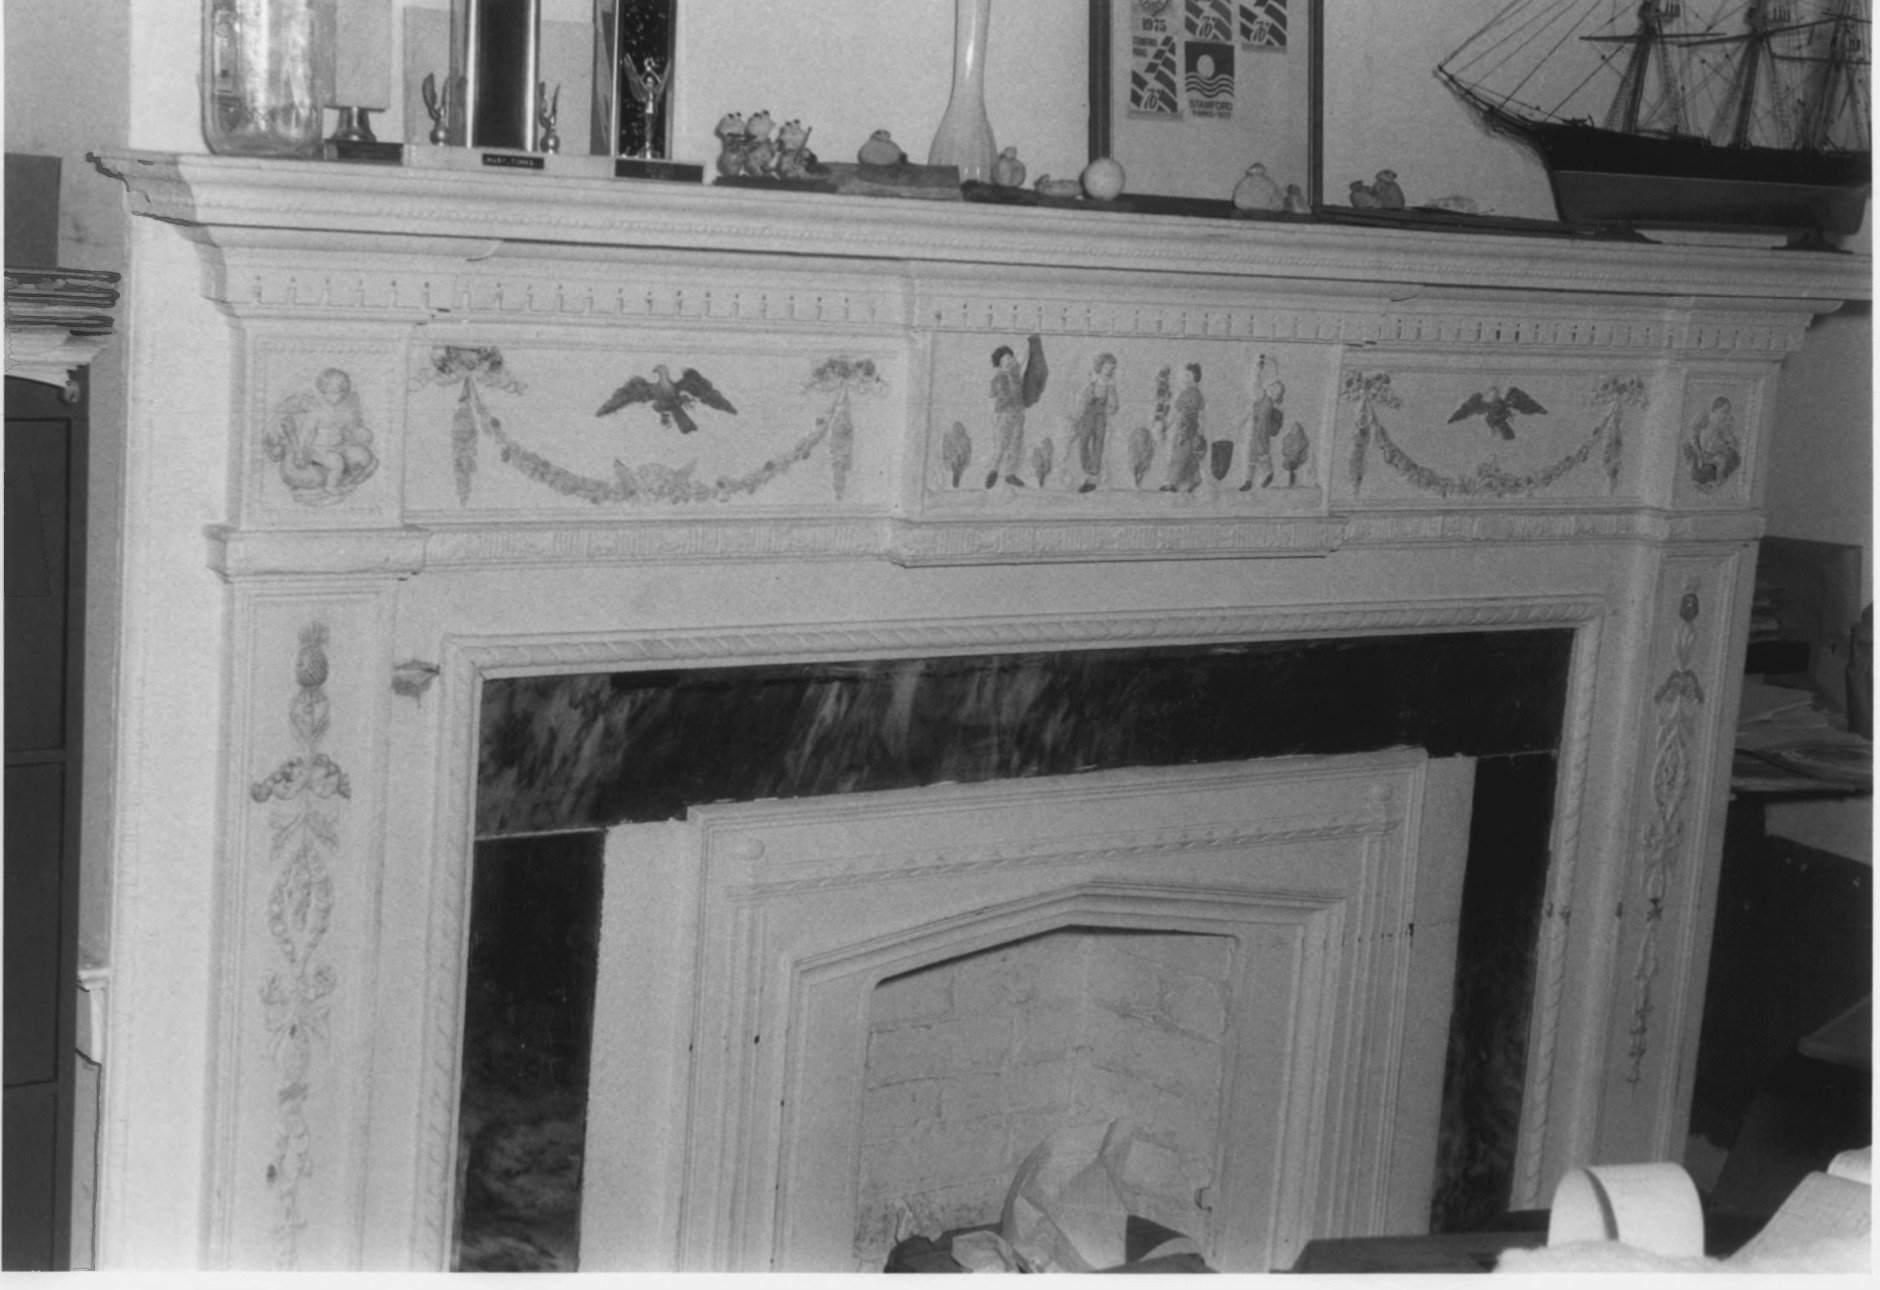 Ornate Fireplace Details Inside the Cove House in 1979 by D. Ransom, Part of the NPS NRHP Photographic Collection on the Cove House